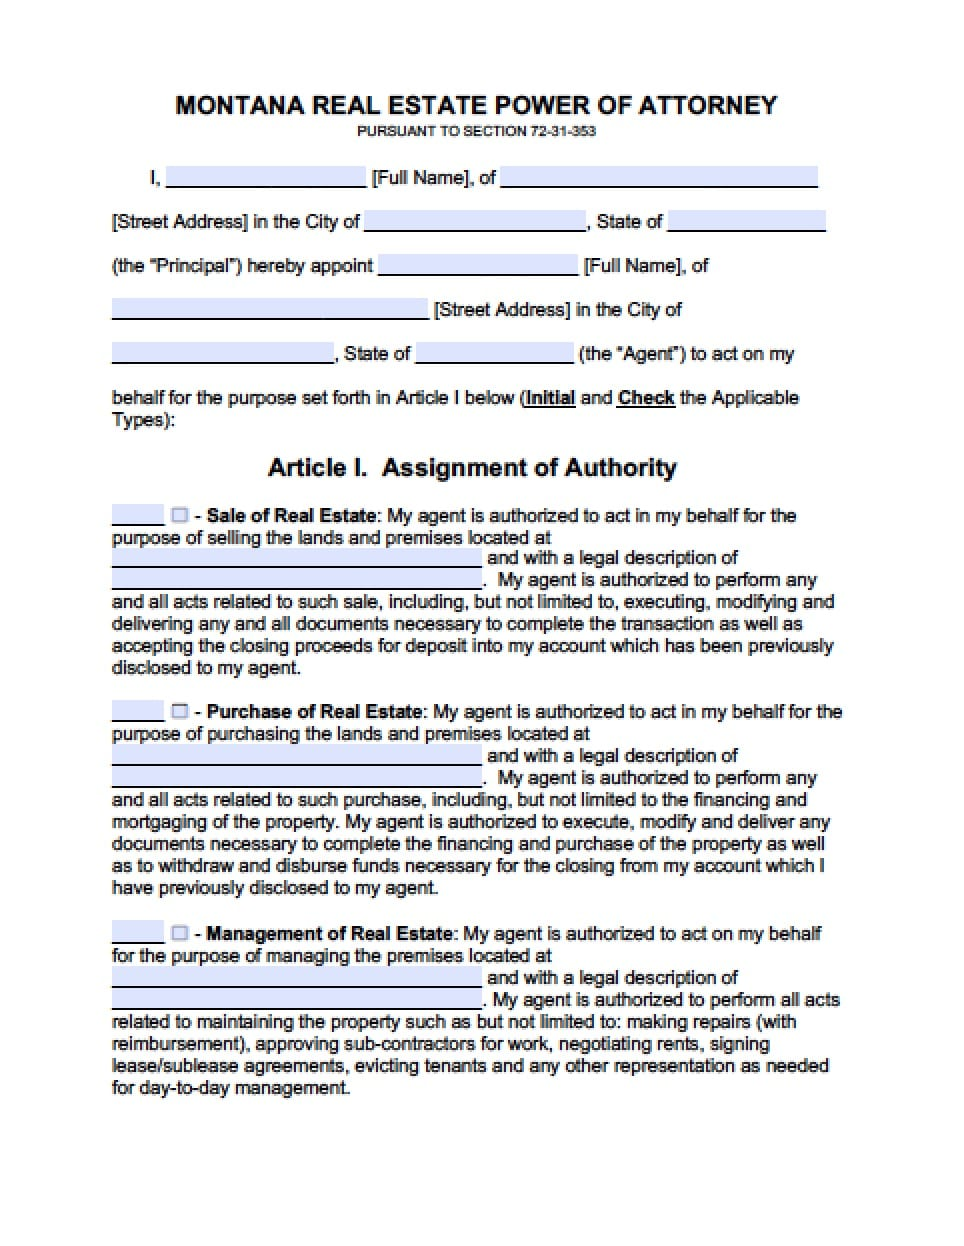 Montana Real Estate ONLY Power Of Attorney Form   Power Of Attorney : Power  Of Attorney